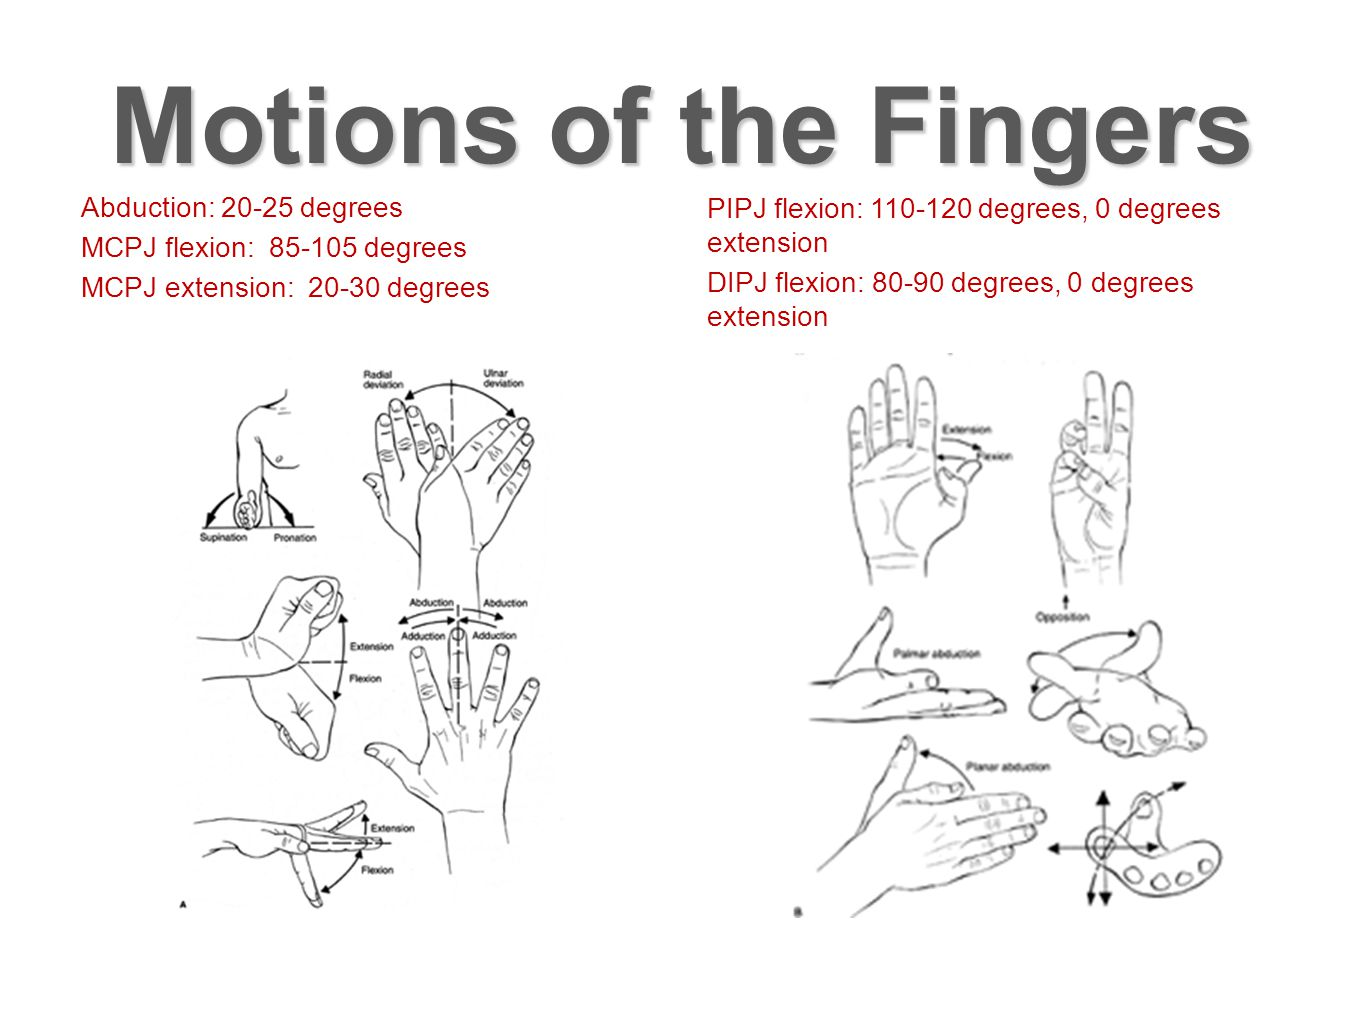 Motions of the Fingers Abduction: 20-25 degrees MCPJ flexion: 85-105 degrees MCPJ extension: 20-30 degrees